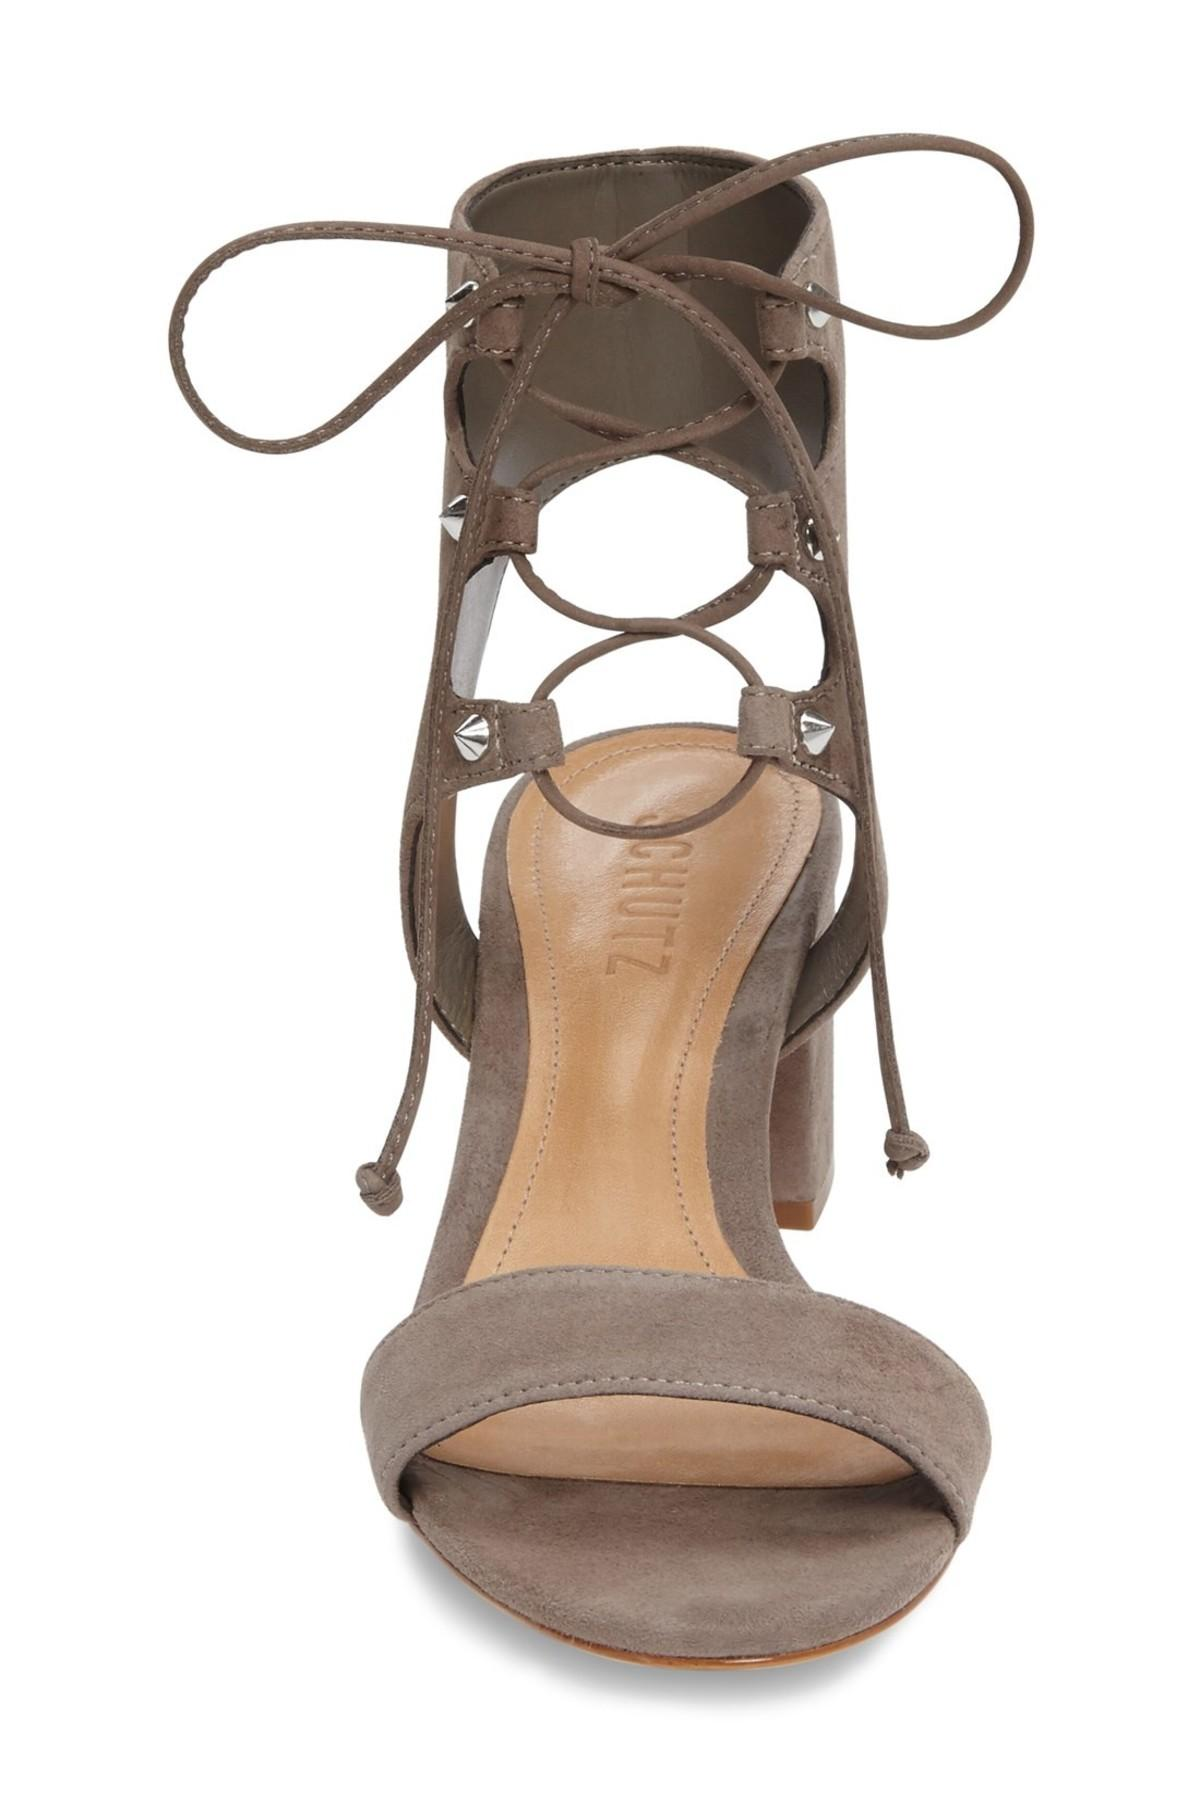 eb6510123c8 Gallery. Previously sold at  Nordstrom Rack · Women s Perspex Heels ...